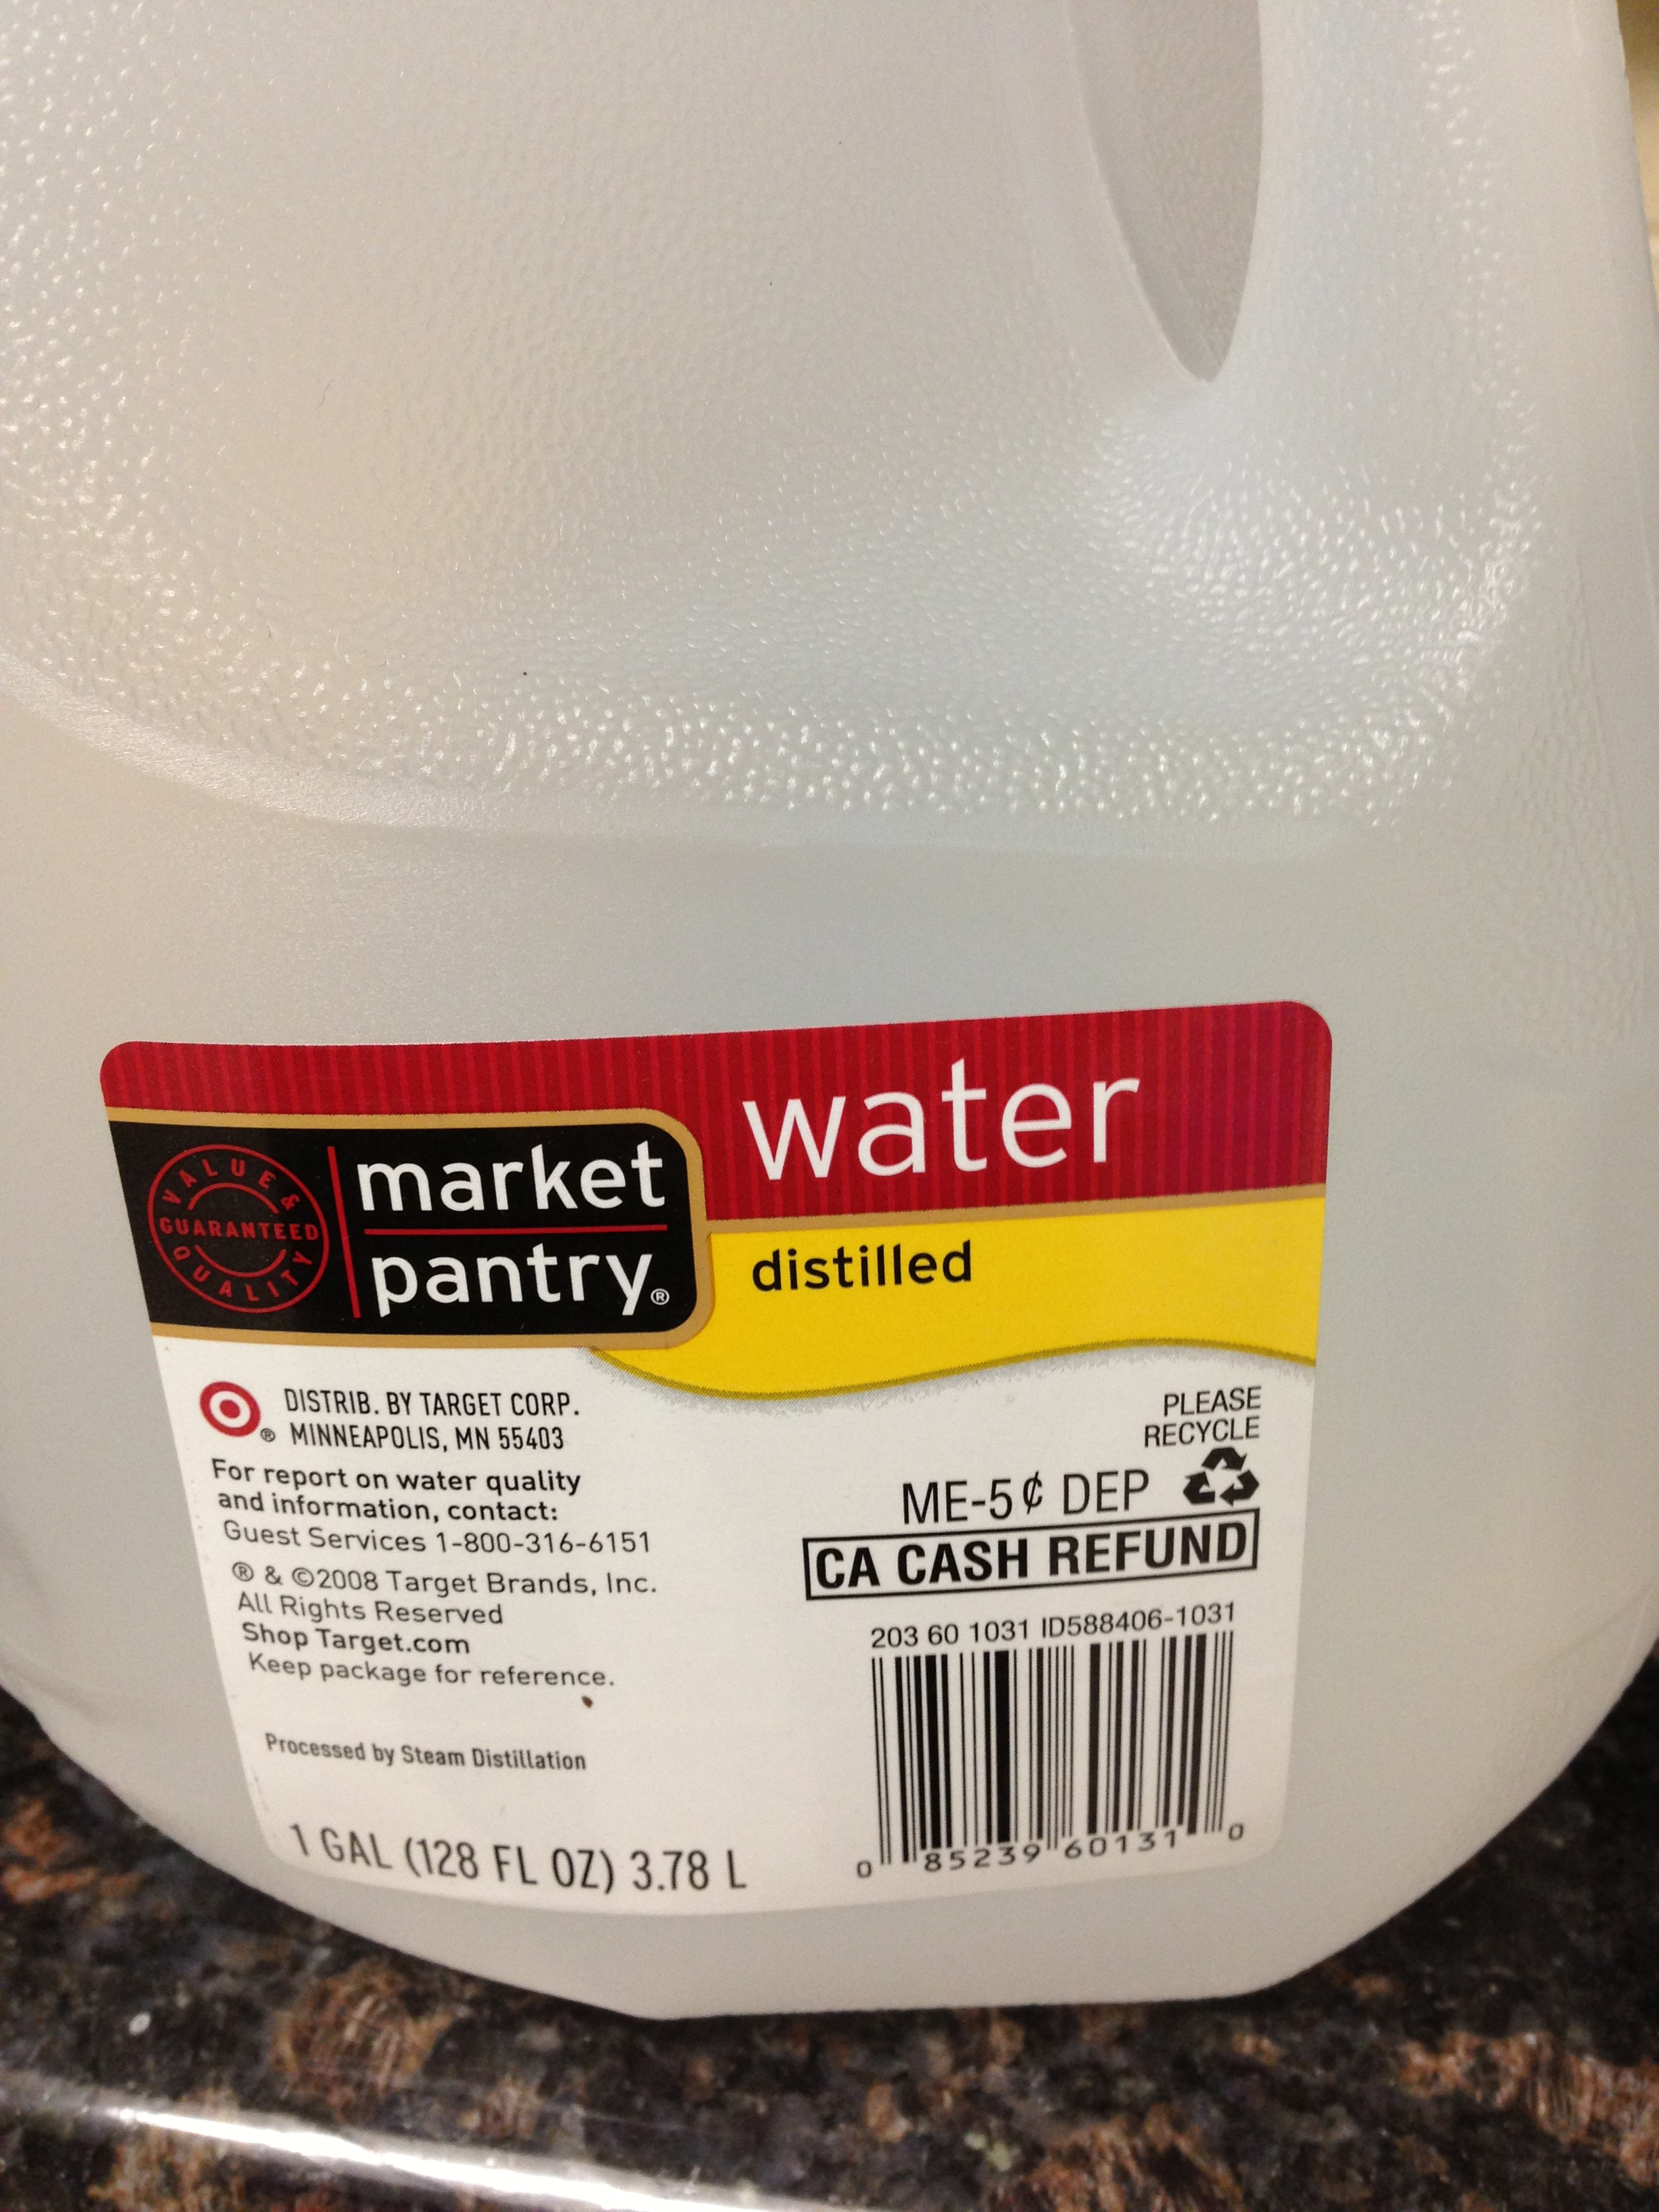 Distilled Water, Less than a dollar a gallon